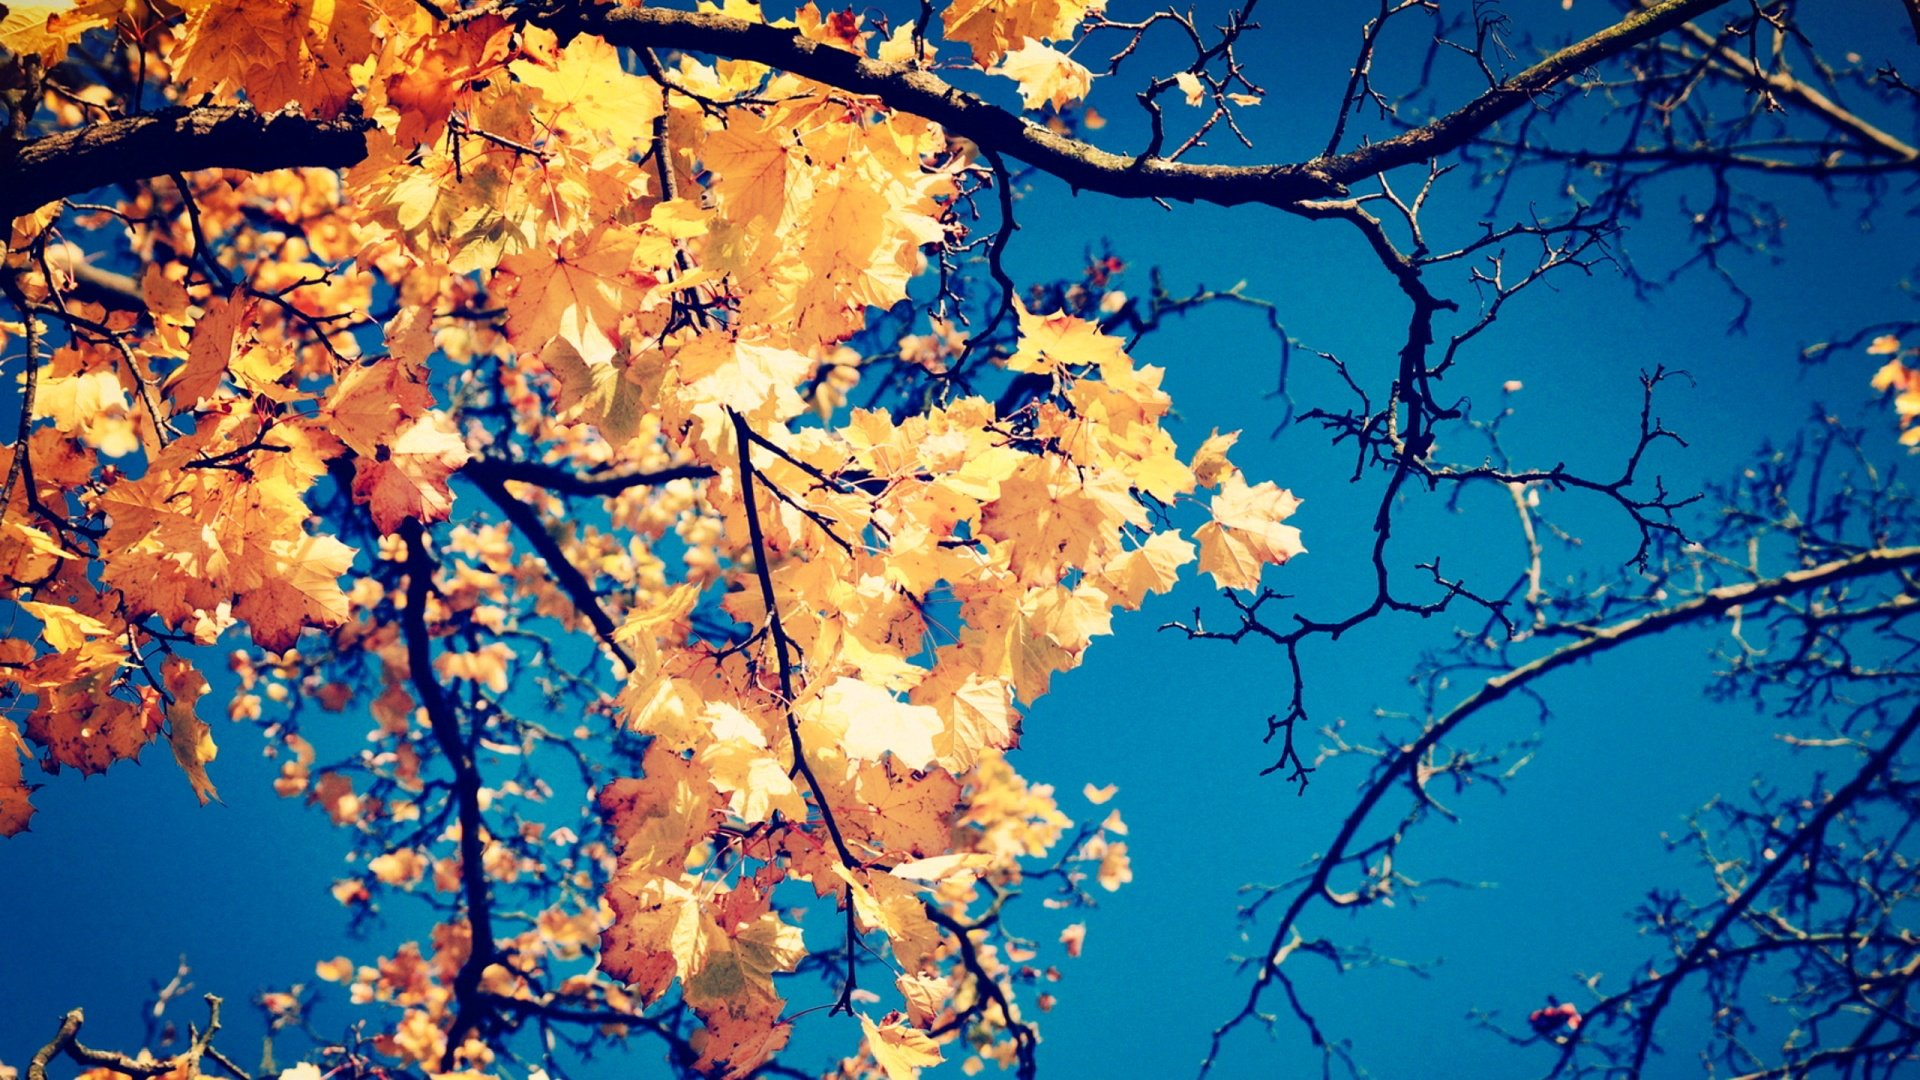 autumn leaves wallpaper free download